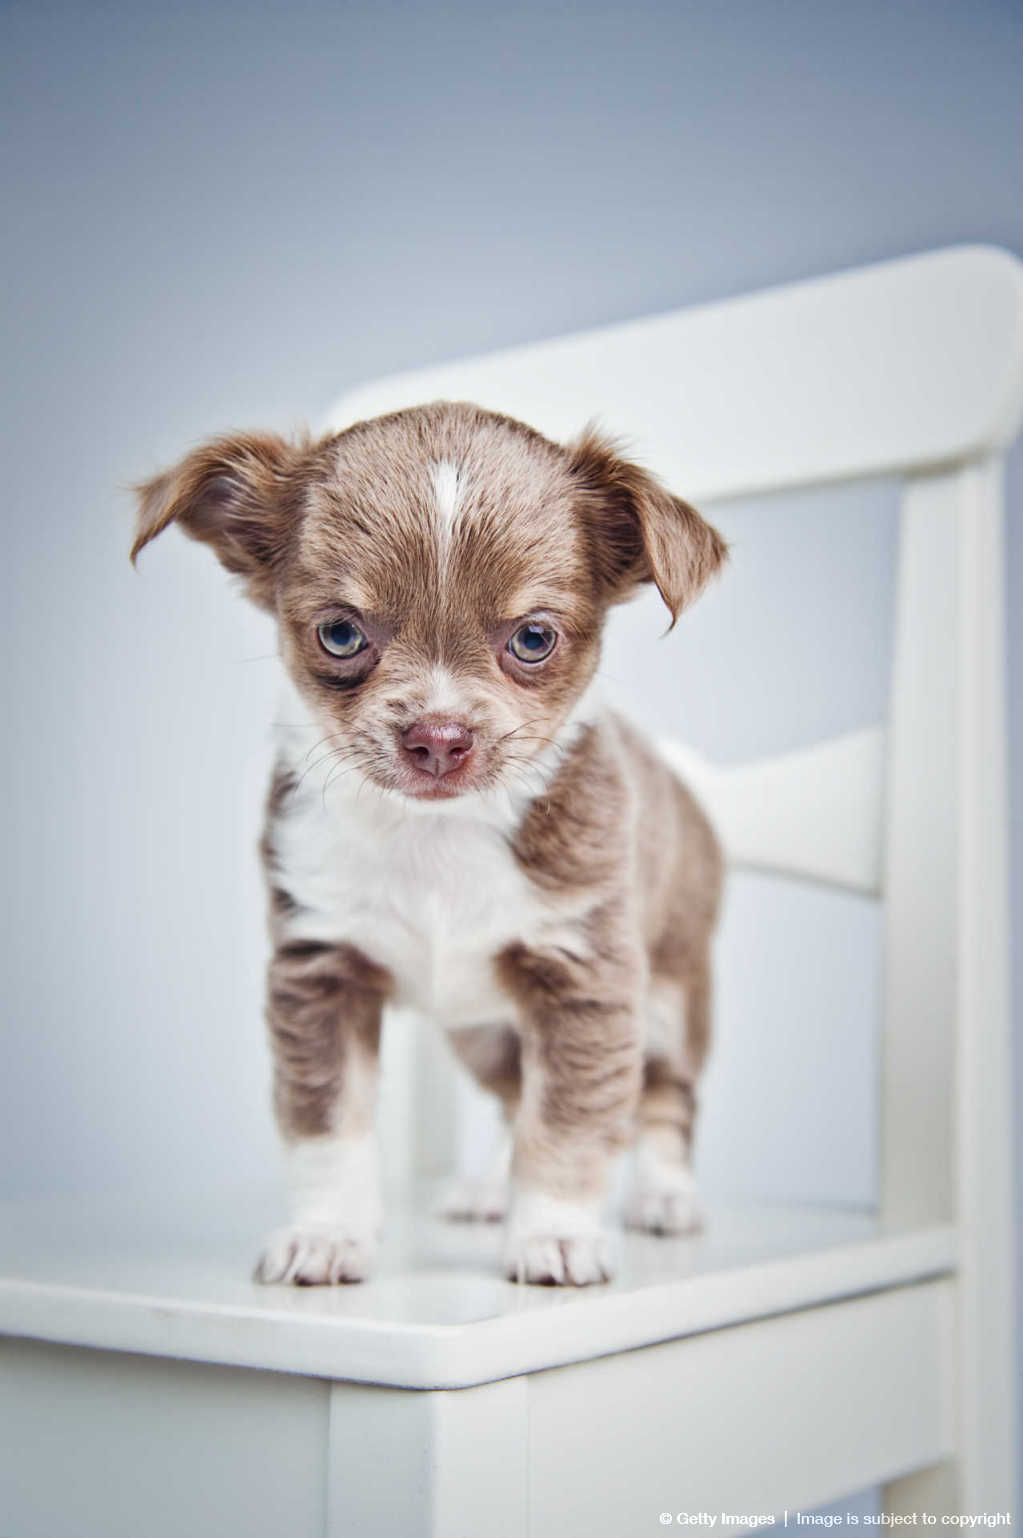 Cute Chihuahua puppy looking at you